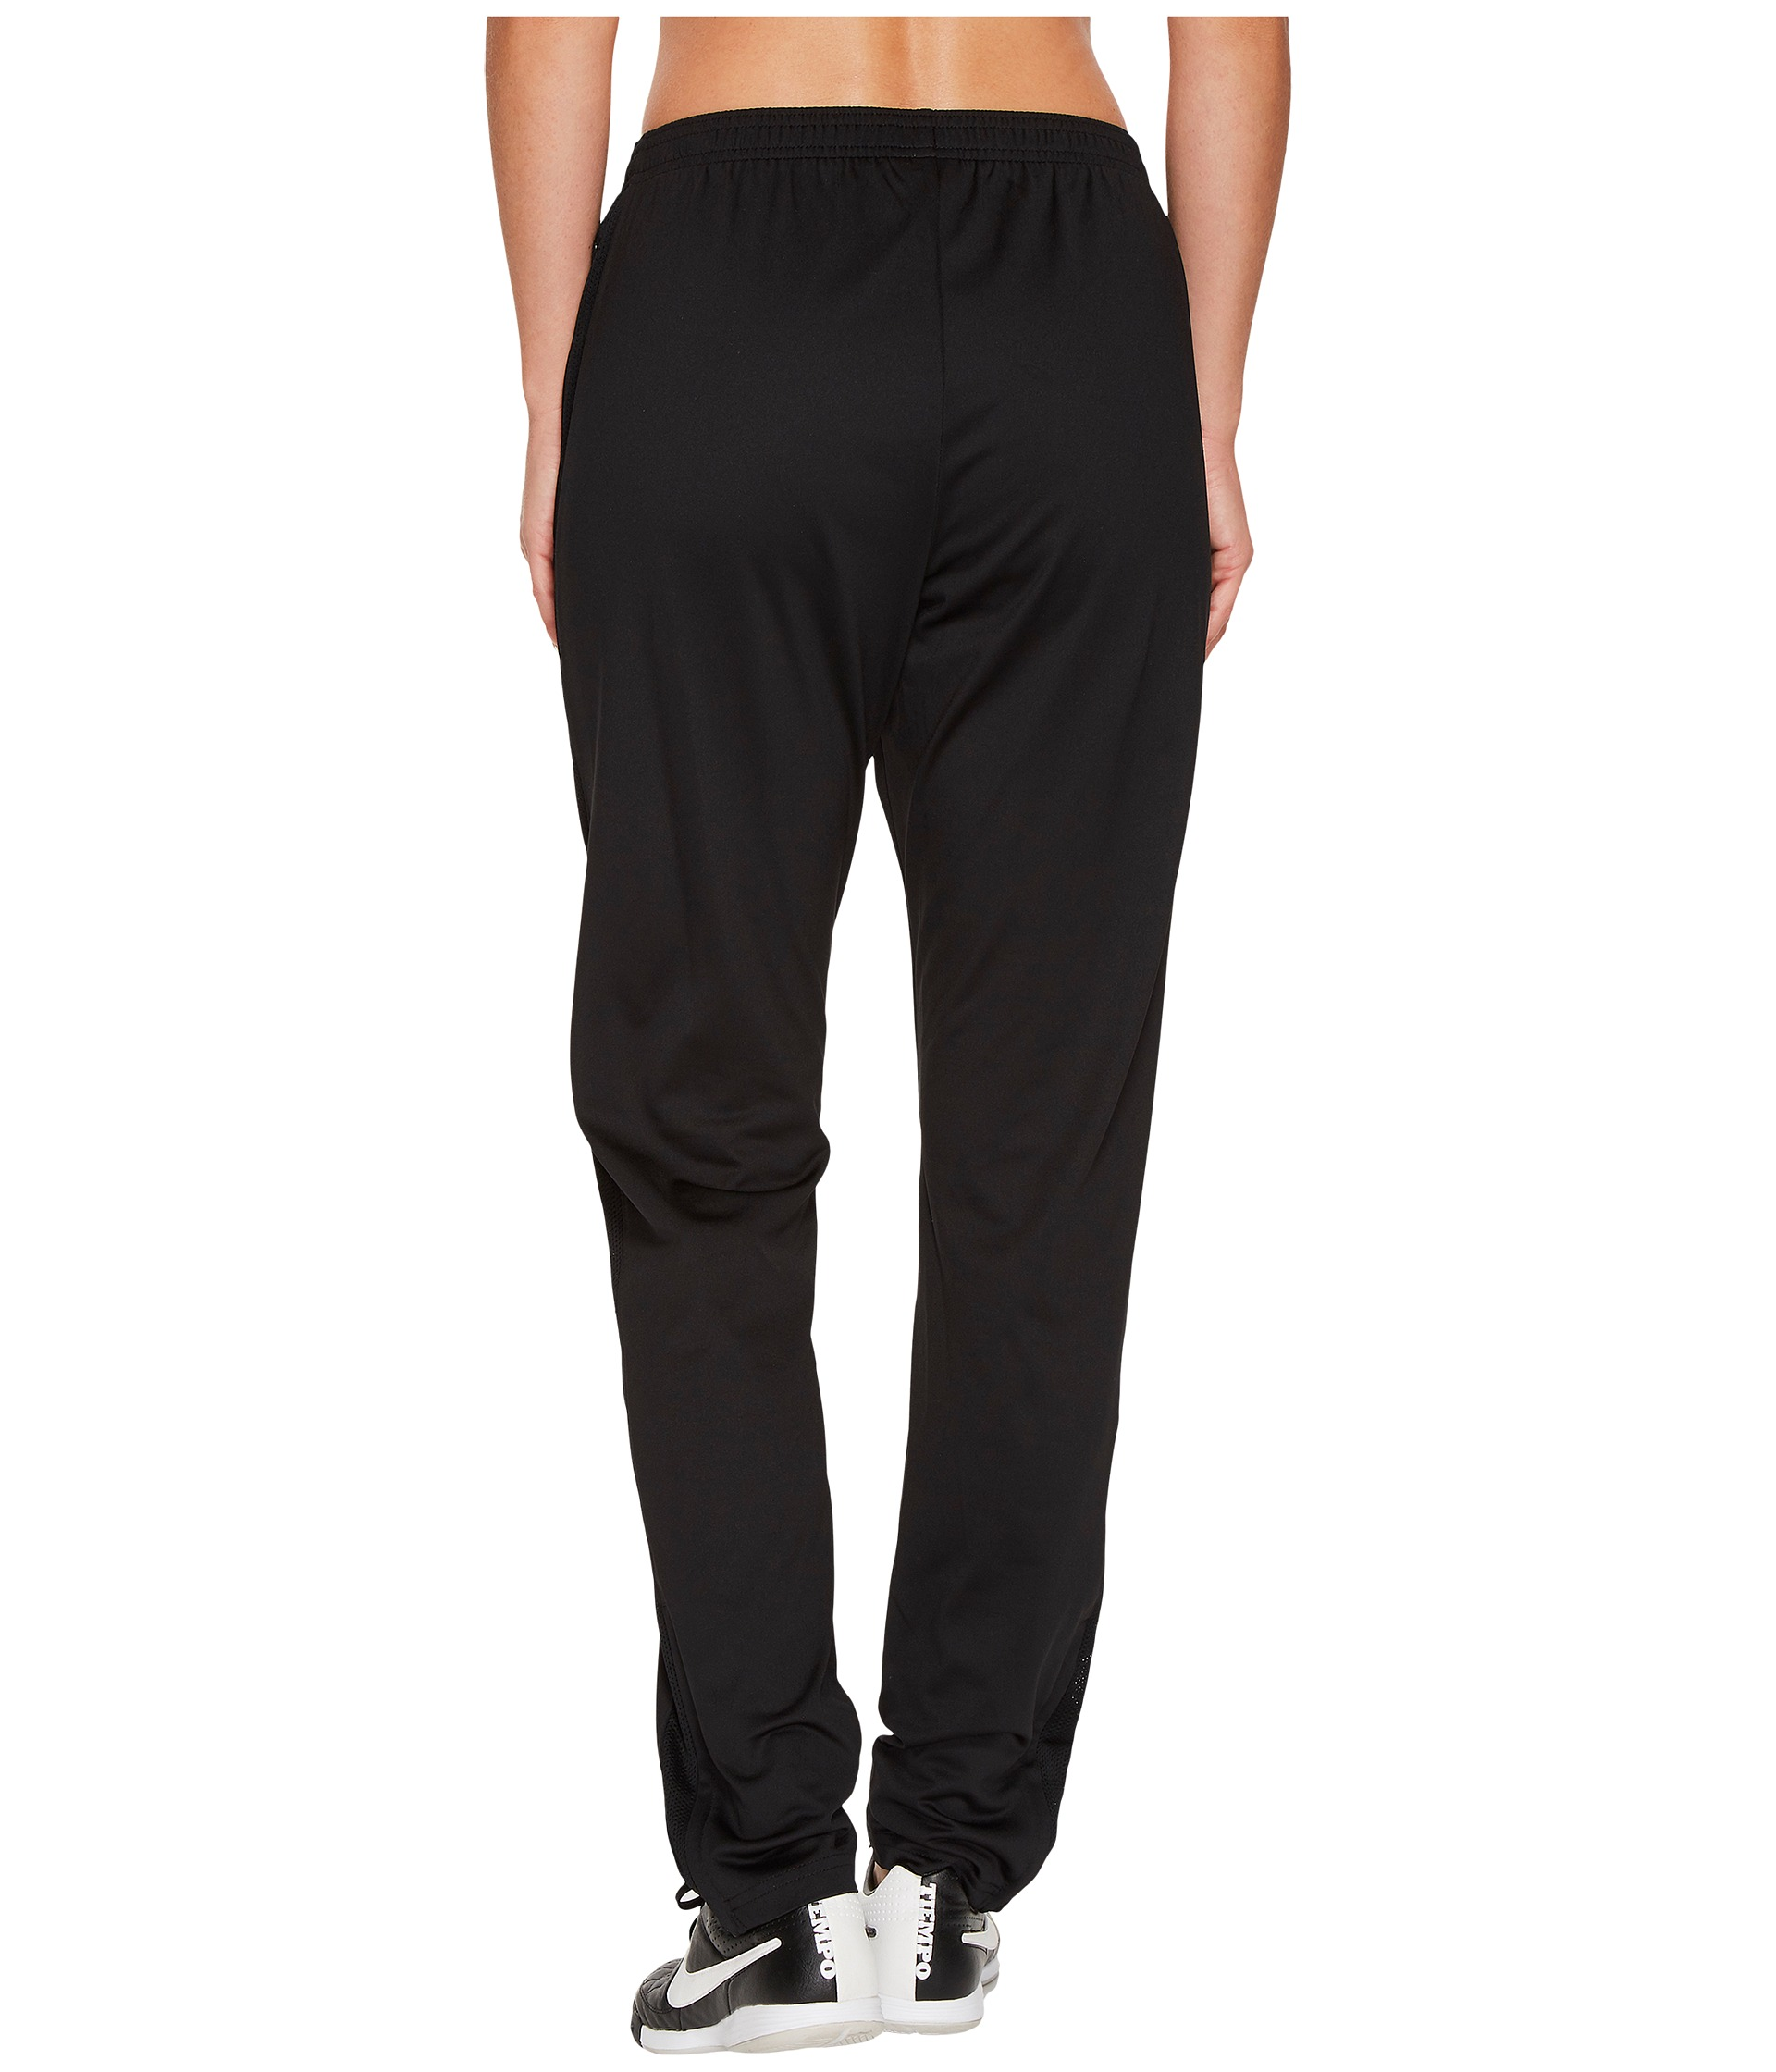 Nike Academy Soccer Pant at Zappos.com